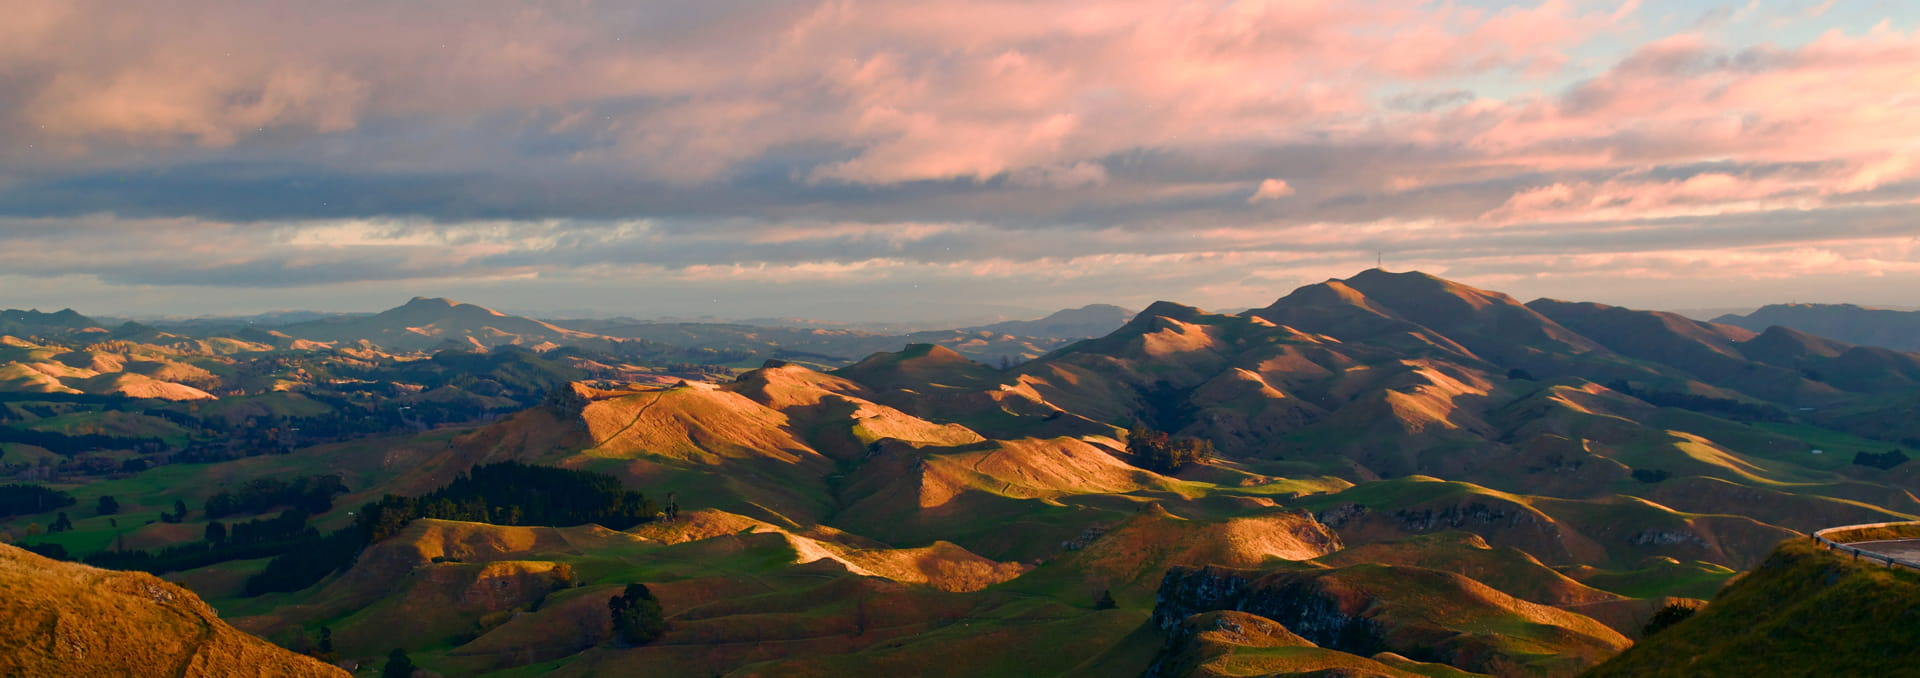 Rolling New Zealand hills under a cloudy sky at sunset